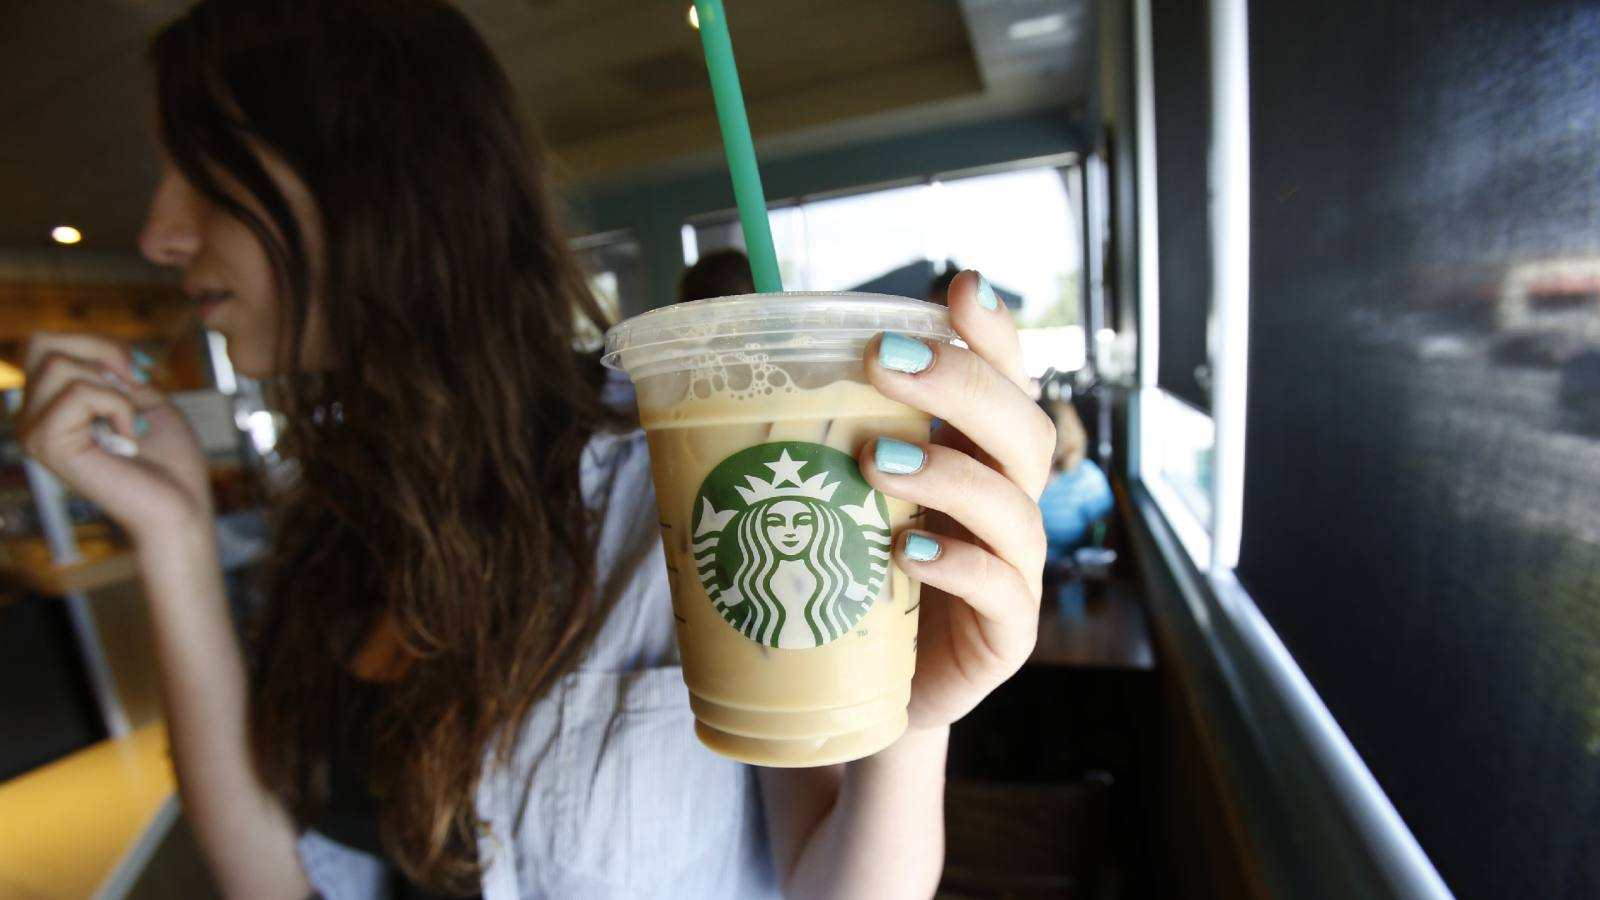 International coffee chain Starbucks will eliminate plastic disposable straws by 2020, and material makers expect more demand for eco-friendly plastics.